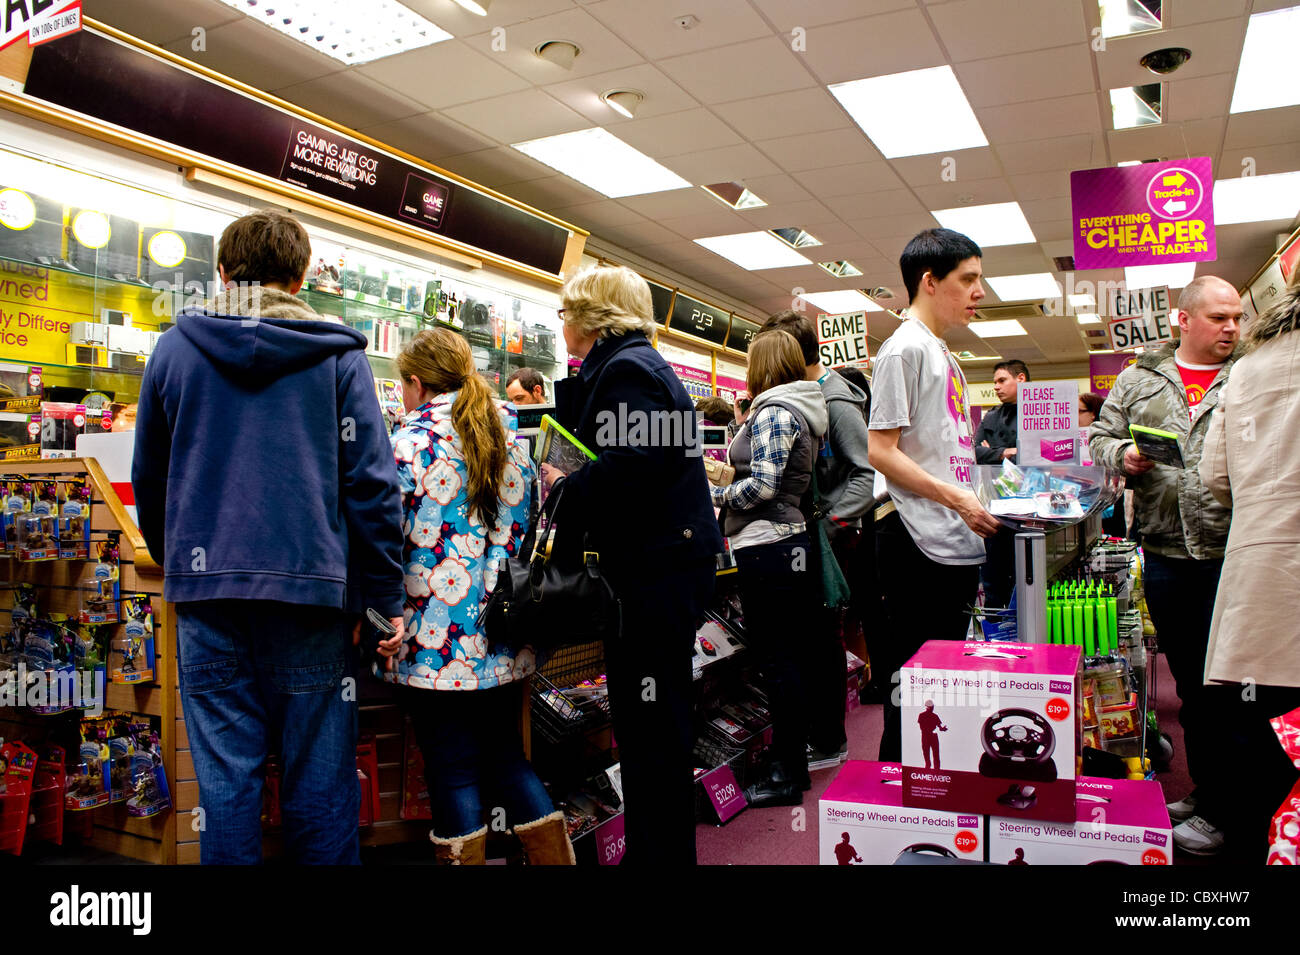 A busy ' game ' store in Truro, UK - Stock Image